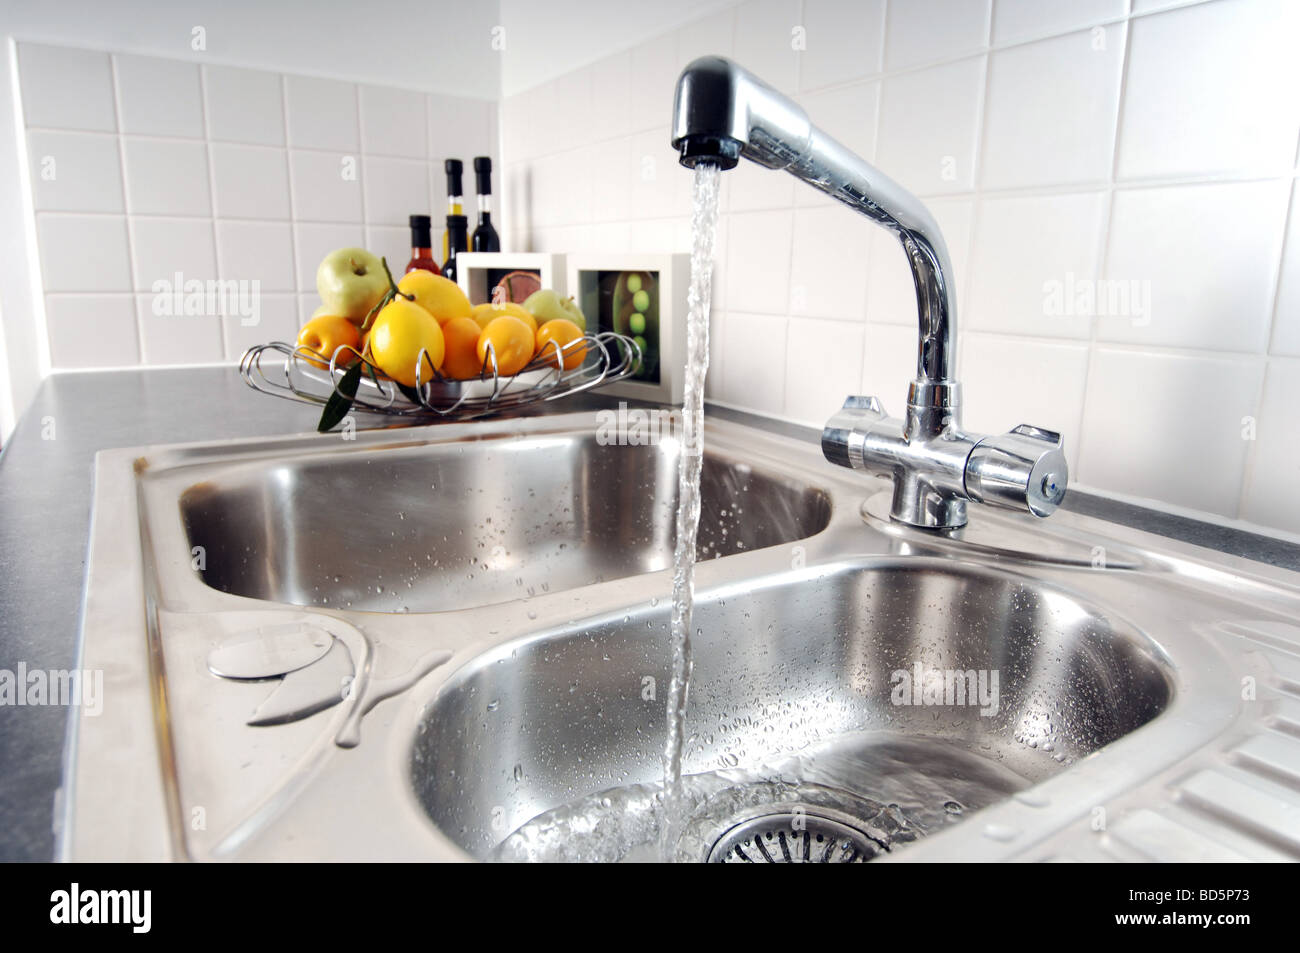 Show home kitchen sink - Stock Image